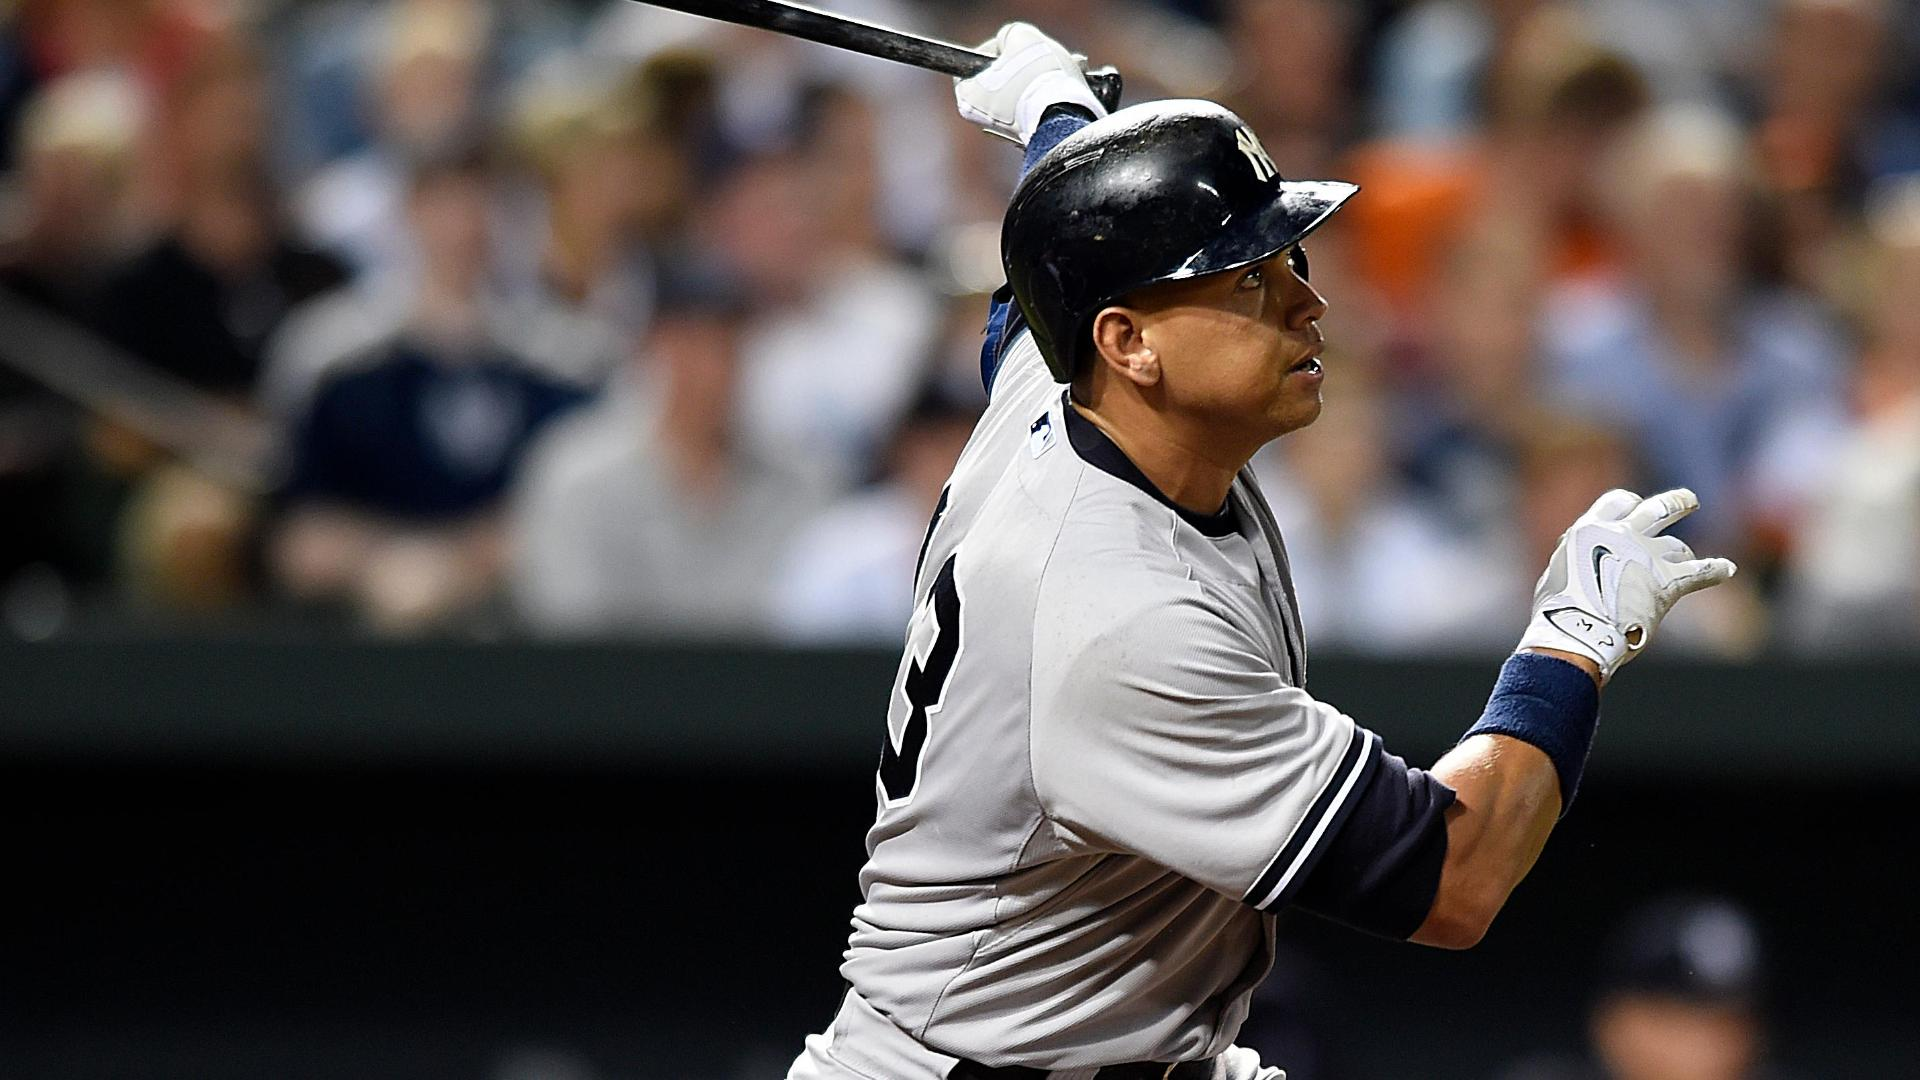 http://a.espncdn.com/media/motion/2015/0614/dm_150613_MLB_OnePlay_ARod_Home_Run154/dm_150613_MLB_OnePlay_ARod_Home_Run154.jpg